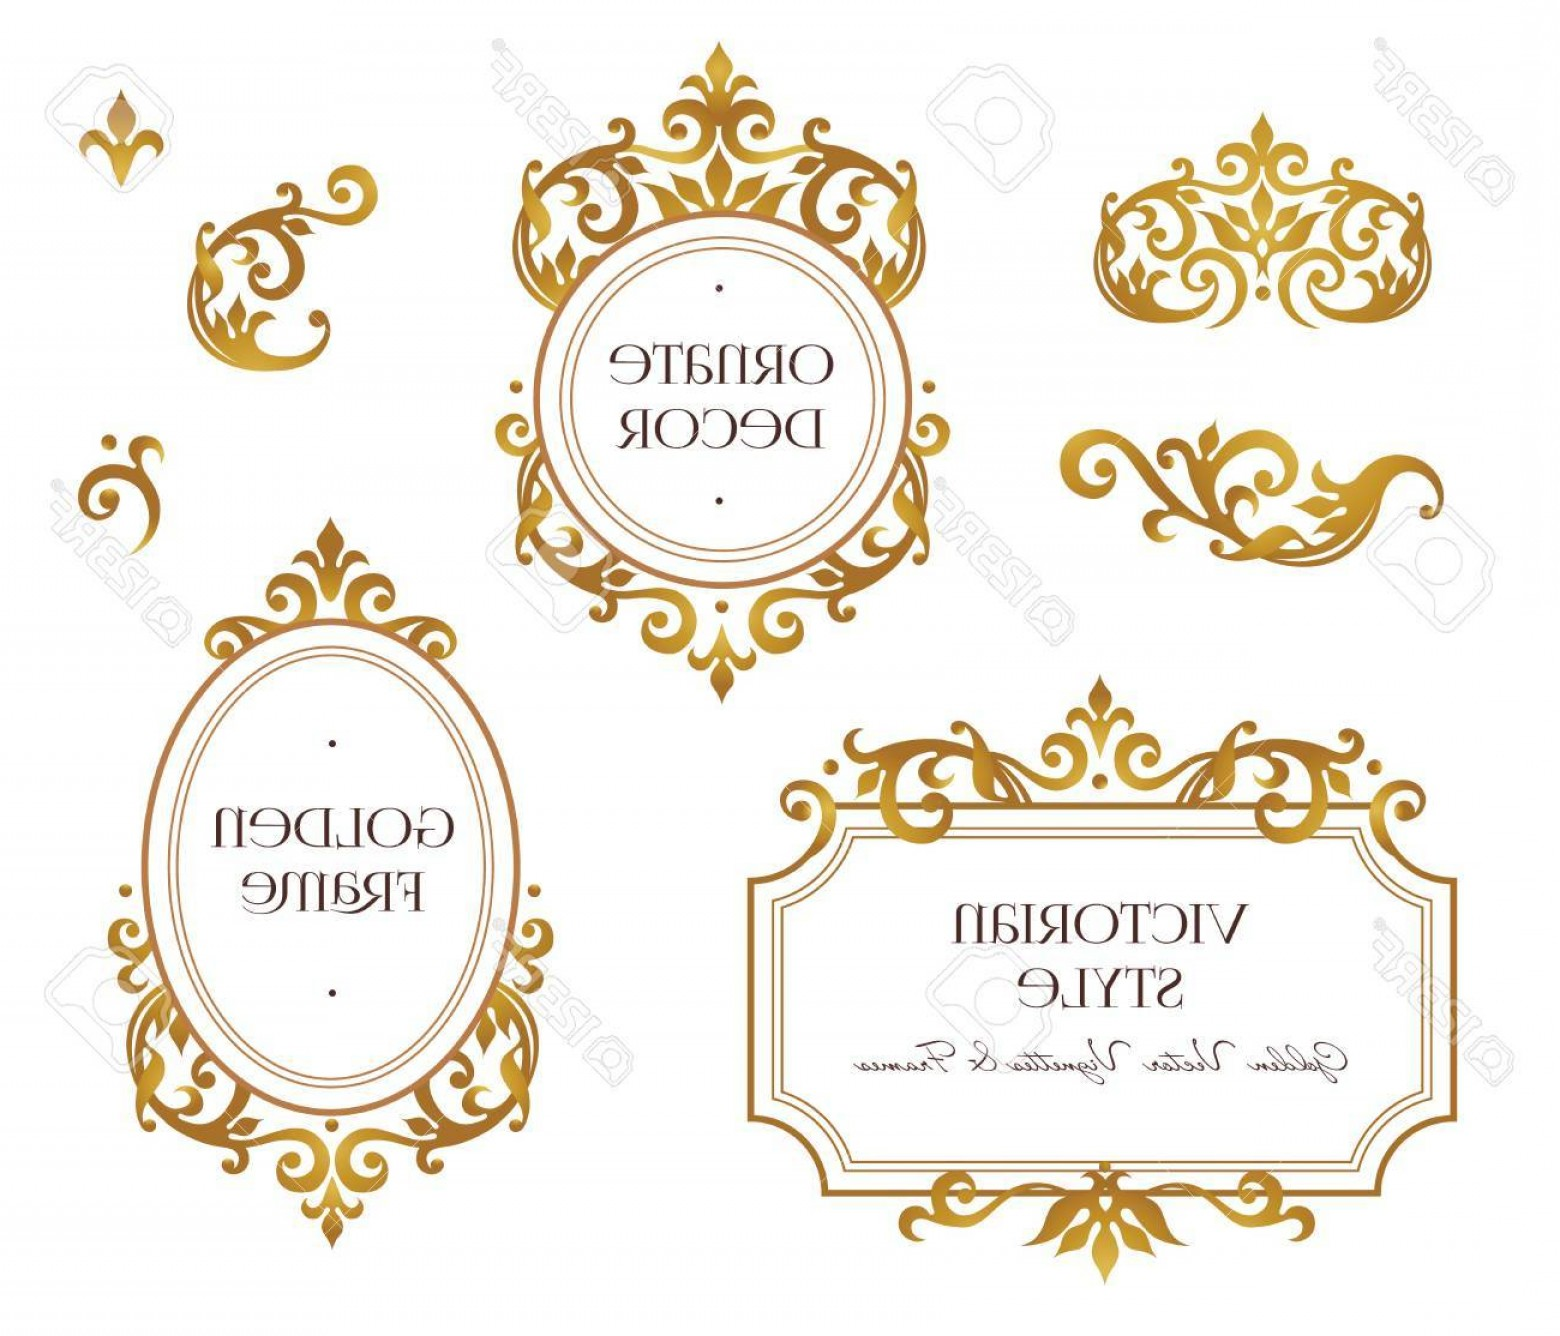 Victorian Style Frame Vector: Photostock Vector Vector Set Frames And Vignette For Design Template Element In Victorian Style Golden Floral Borders